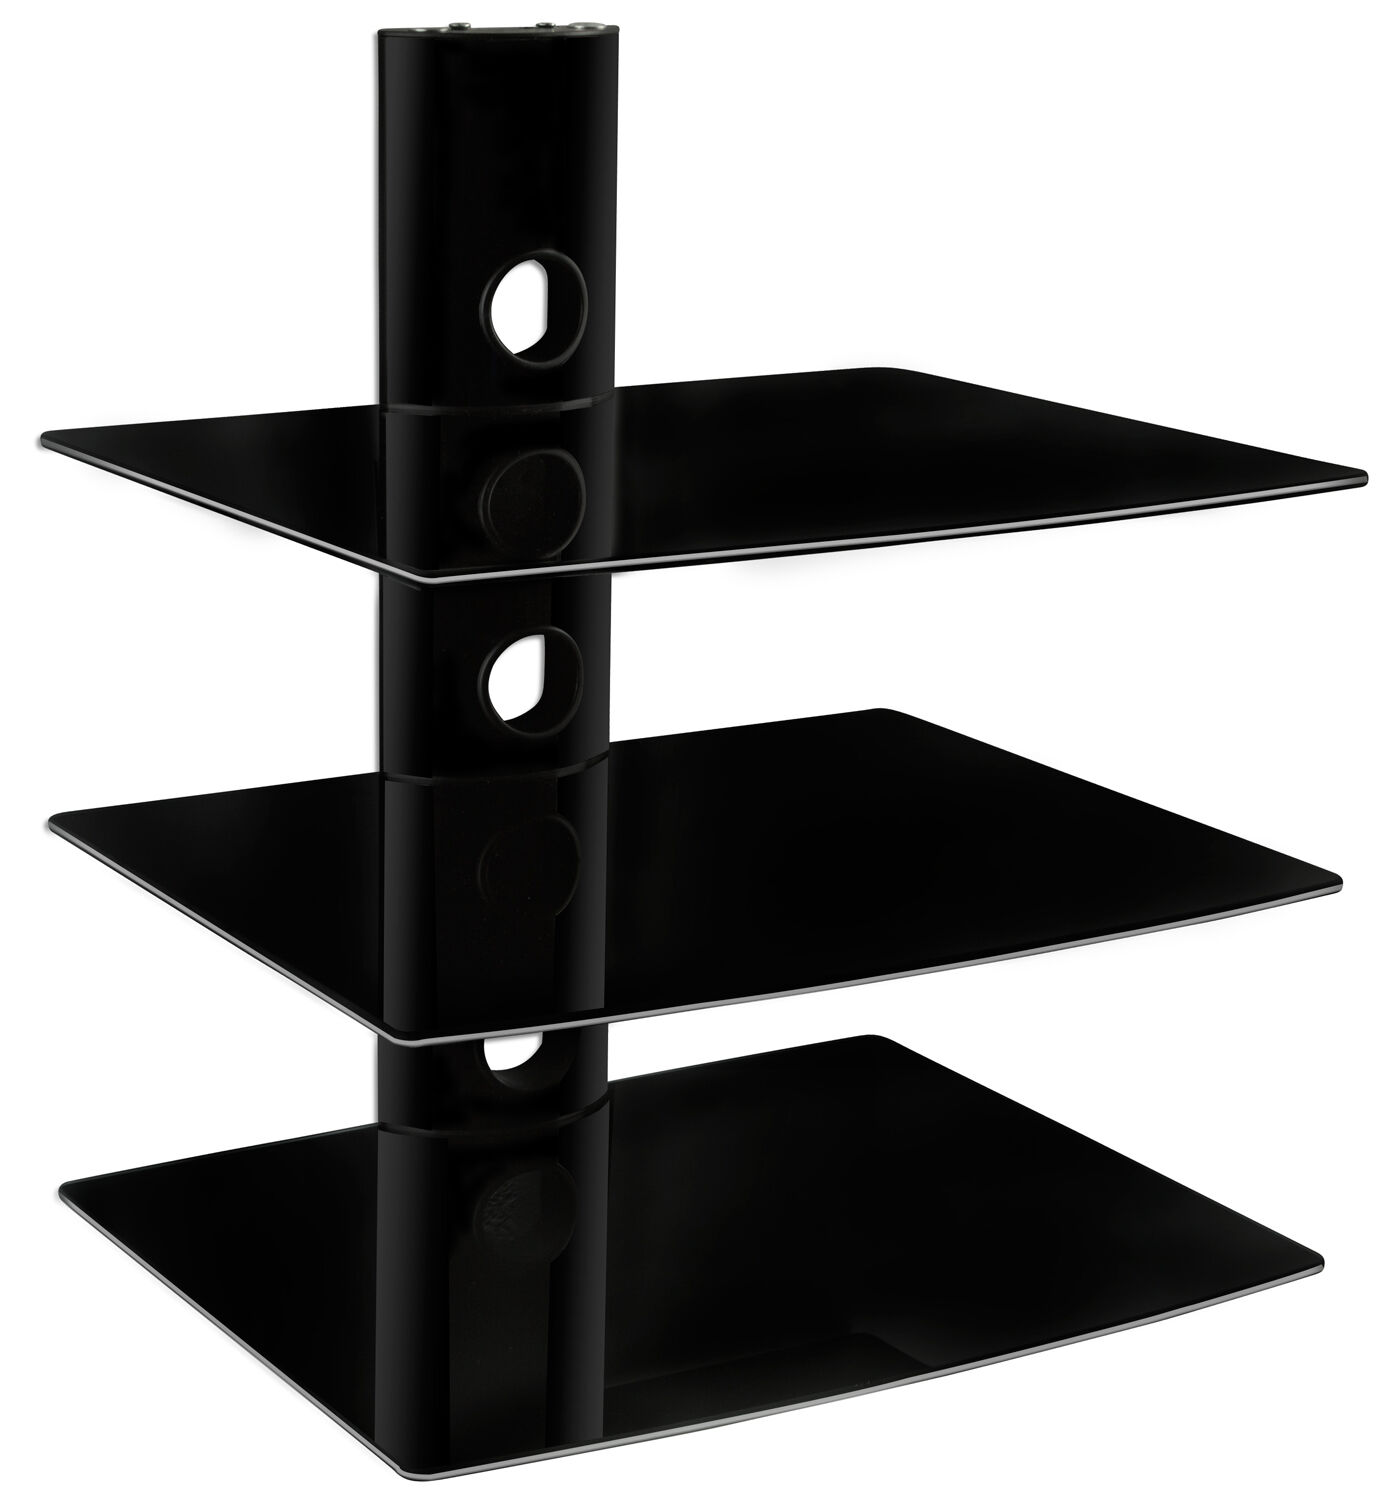 mount floating wall mounted vonhaus black shelf unit for sky box corner hooks heavy duty brackets countertops entertainment console standing bookshelf coat hook board inch wide